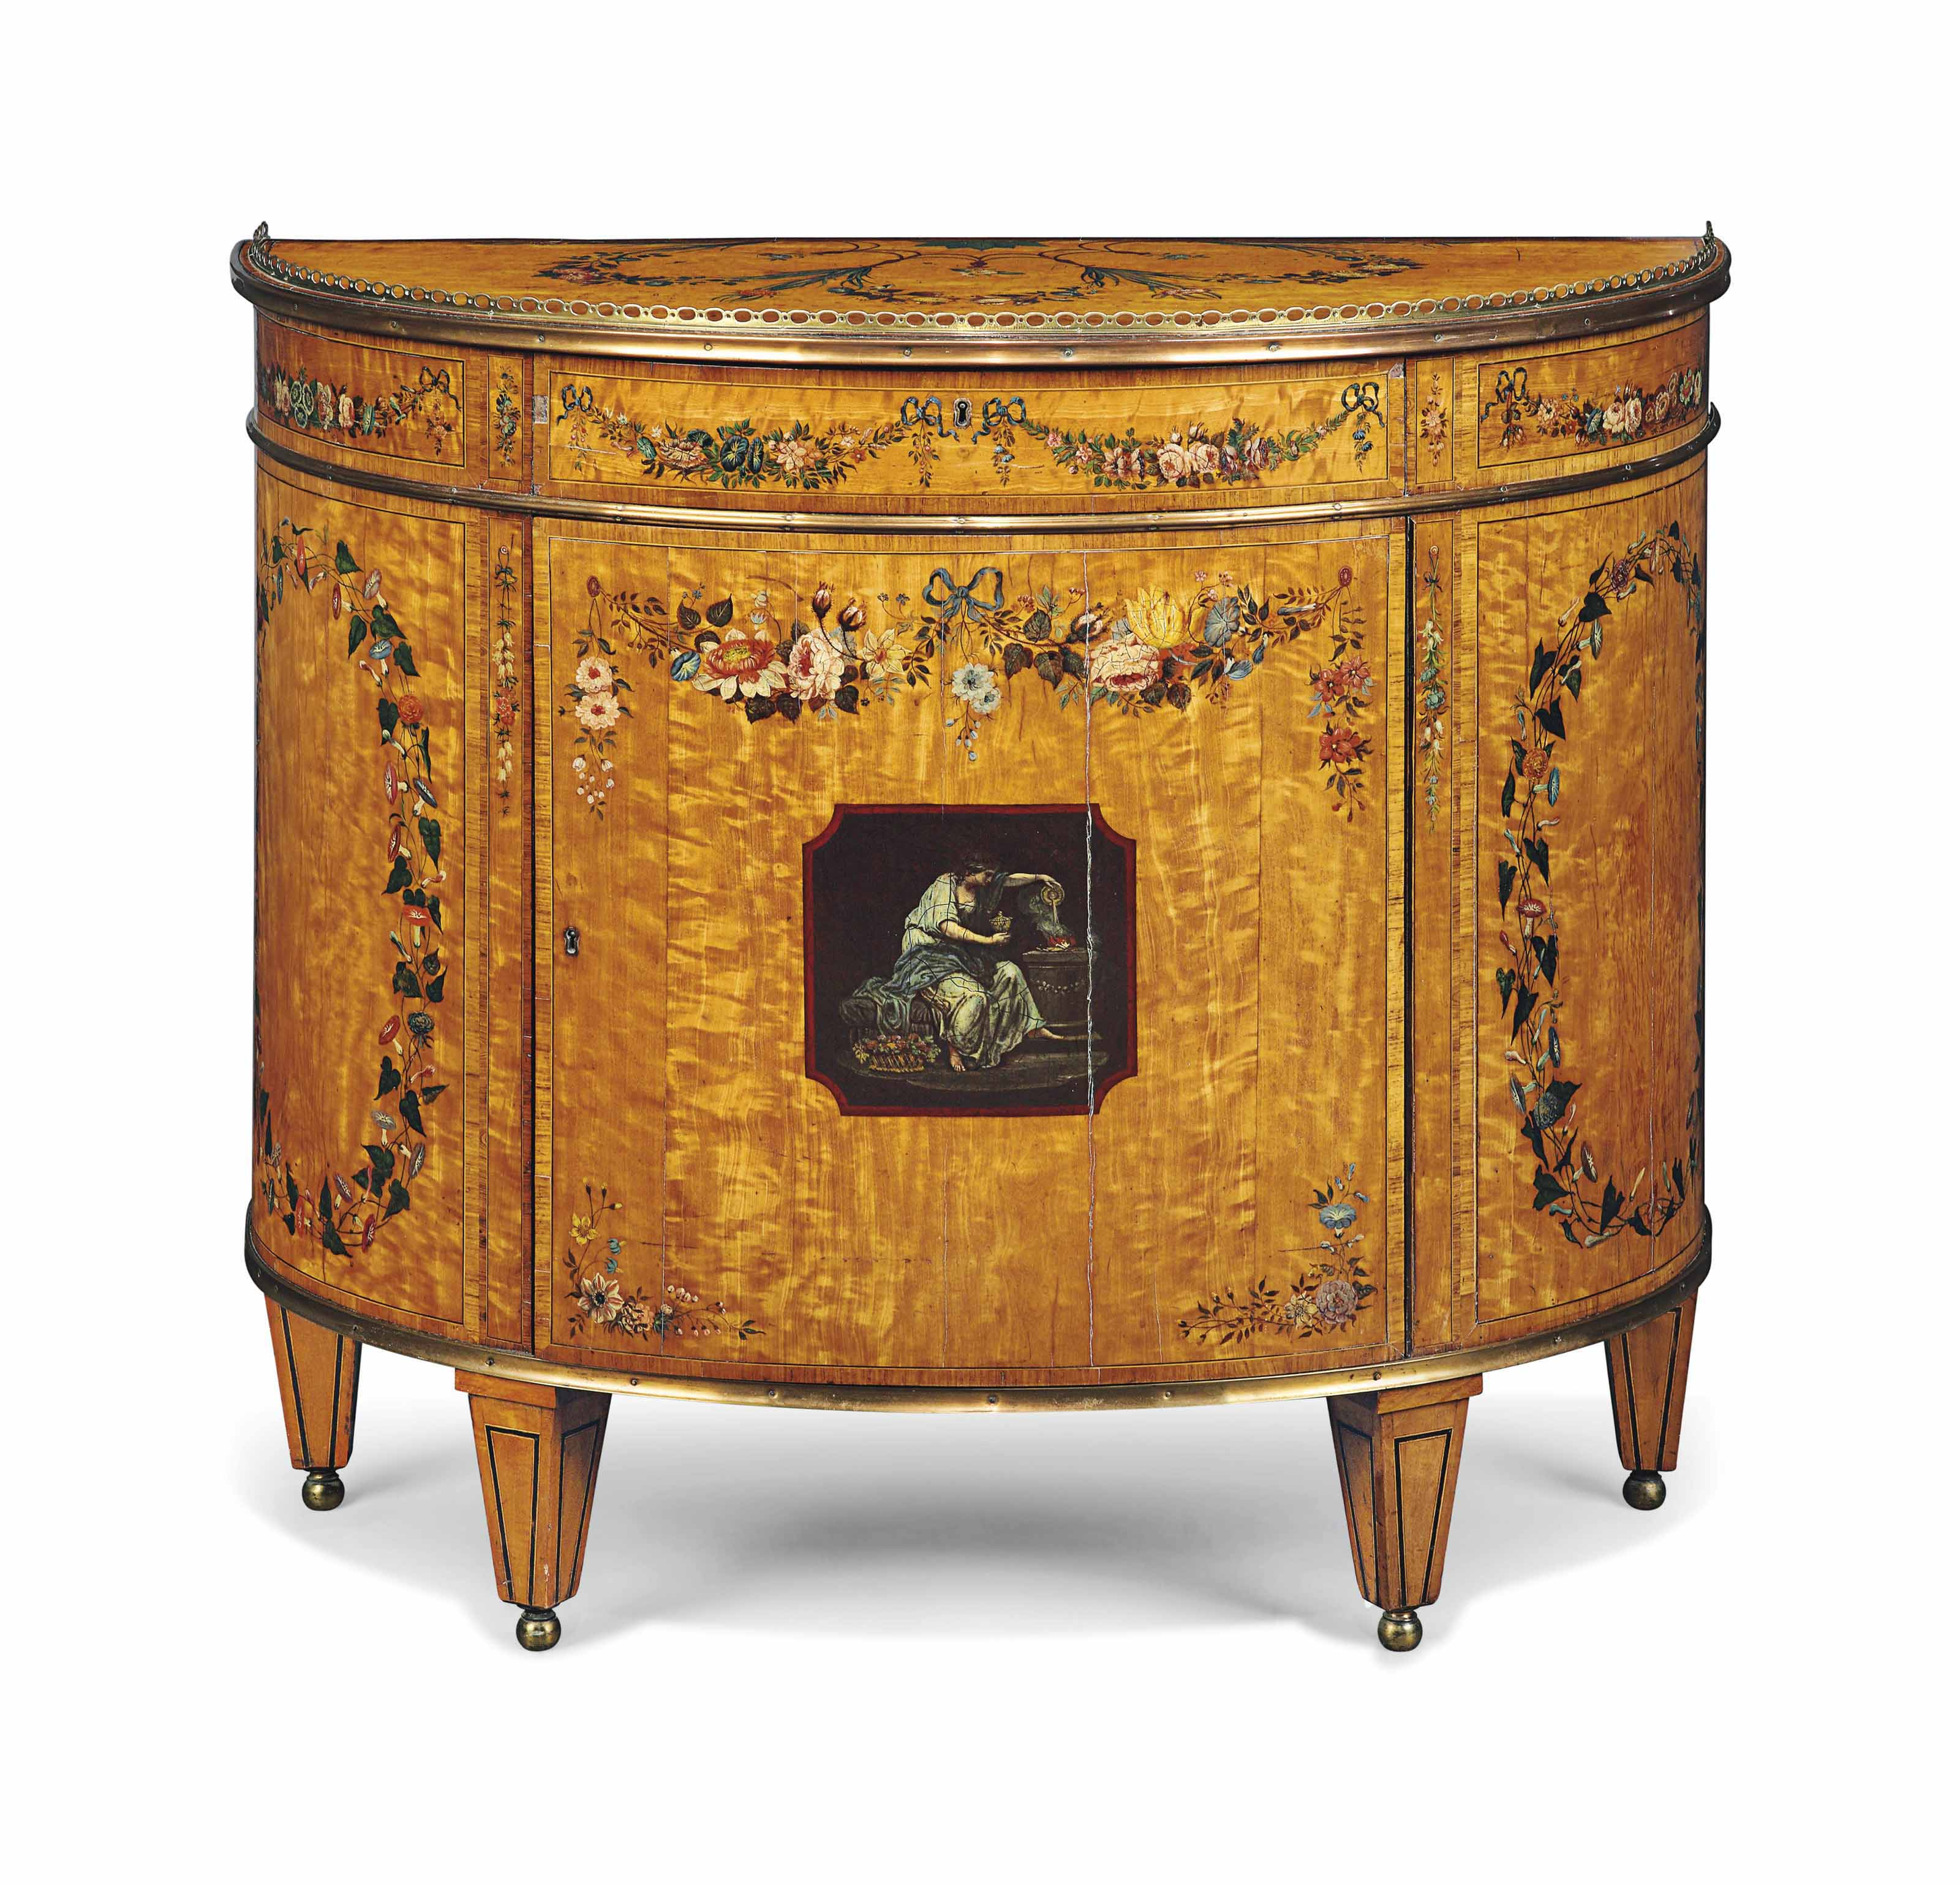 A GEORGE III ROSEWOOD-CROSSBANDED, SATINWOOD AND POLYCHROME-DECORATED DEMI-LUNE COMMODE